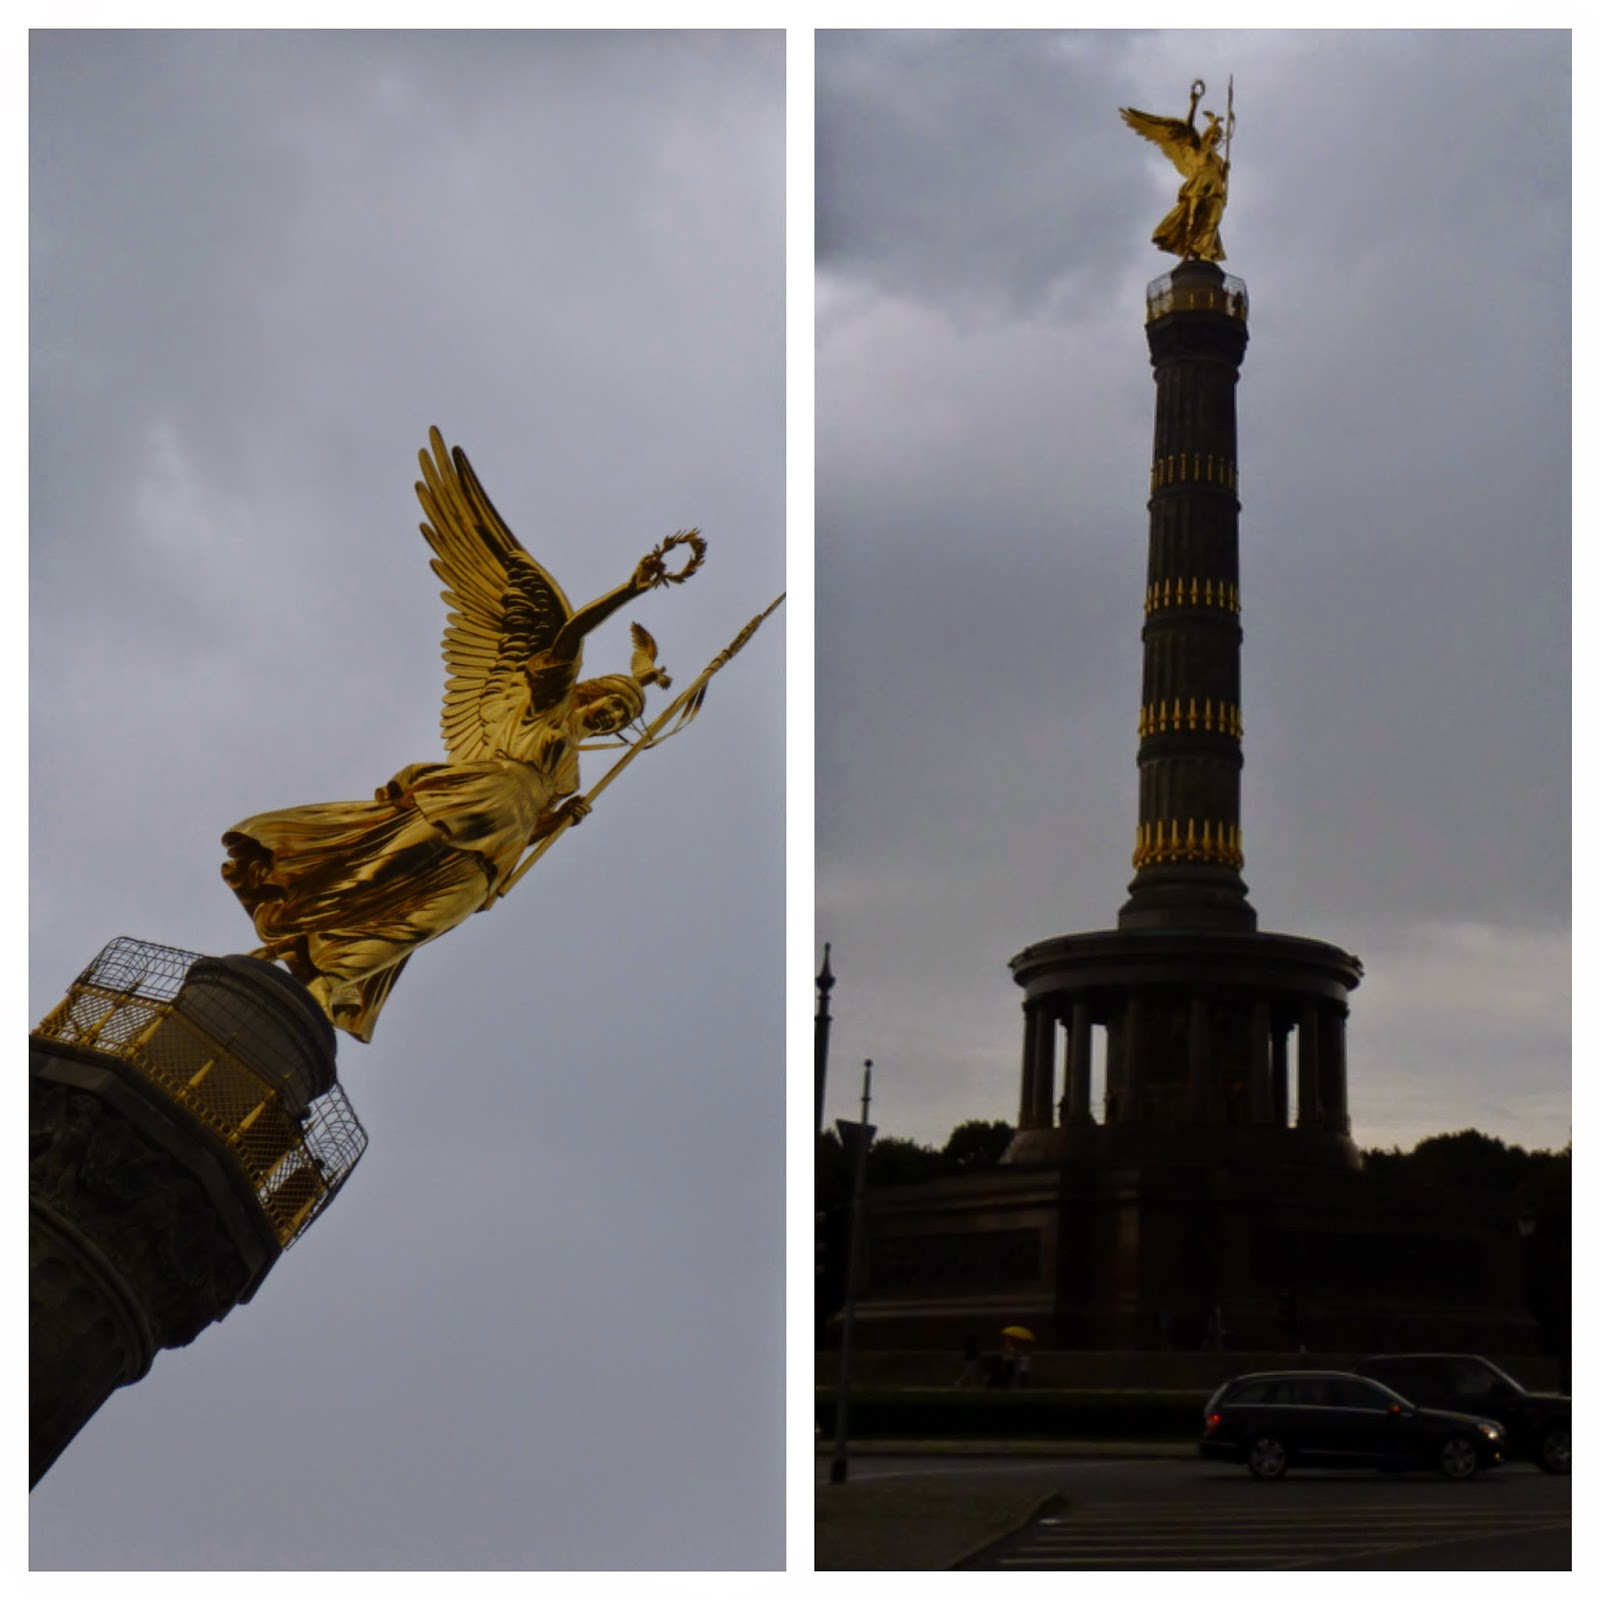 Siegessäule berlin germany